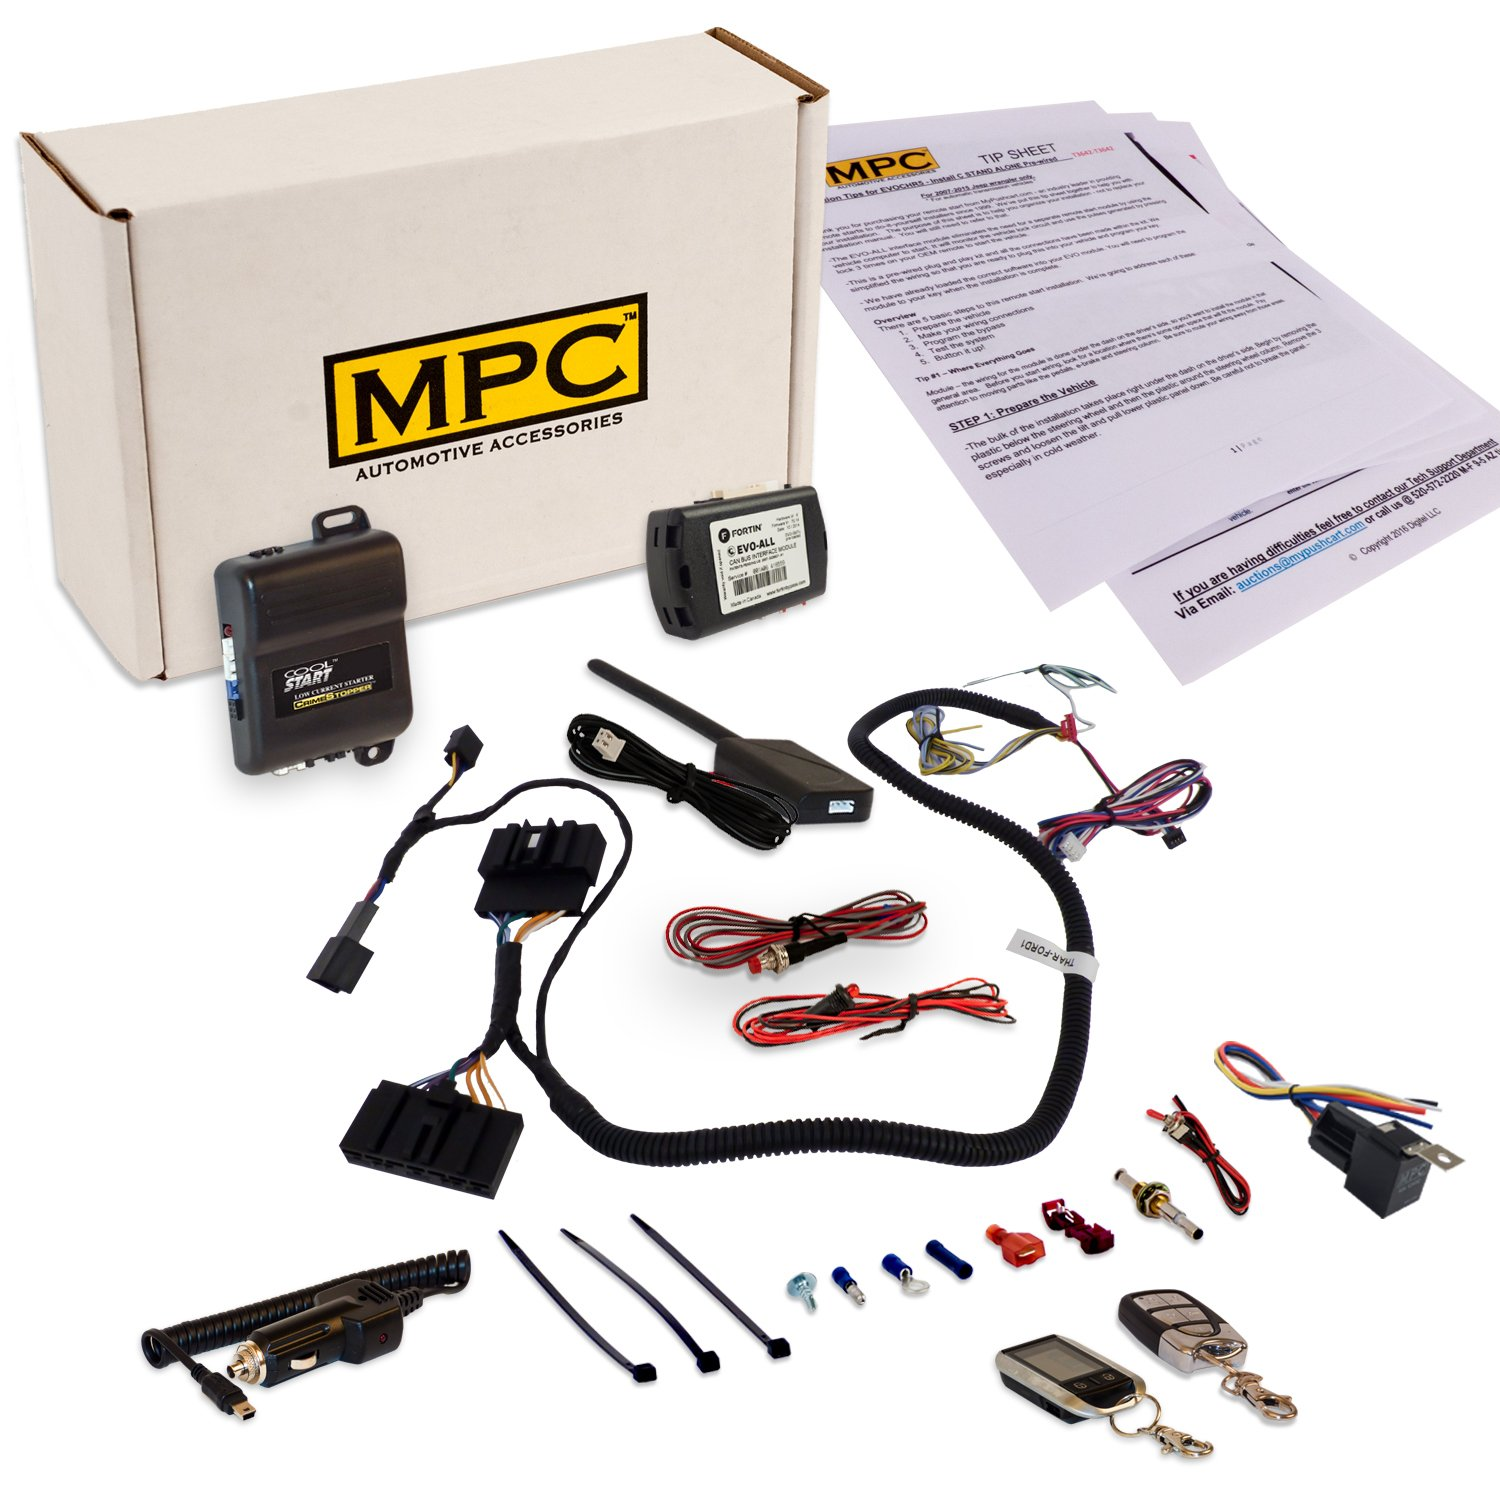 Mpc Complete Remote Start Keyless Entry Kit 2013 2014 Ford Transit Starter Connect W T Harness